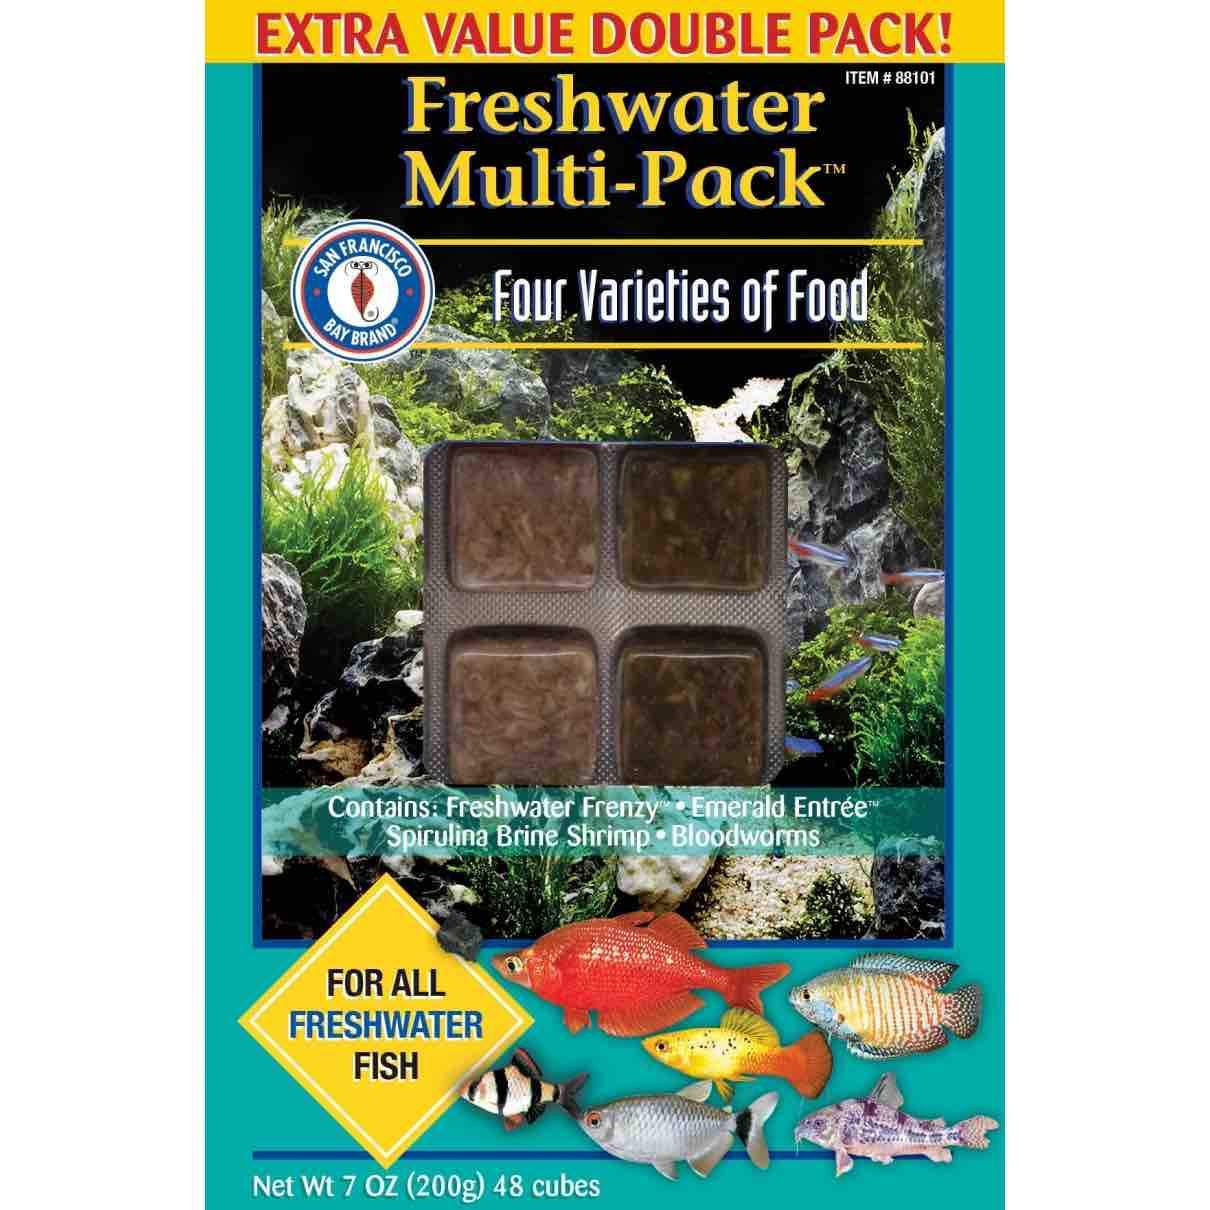 Frozen Aquarium Food Frozen Fish Food Freshwater Multipack - San Francisco Bay Brand